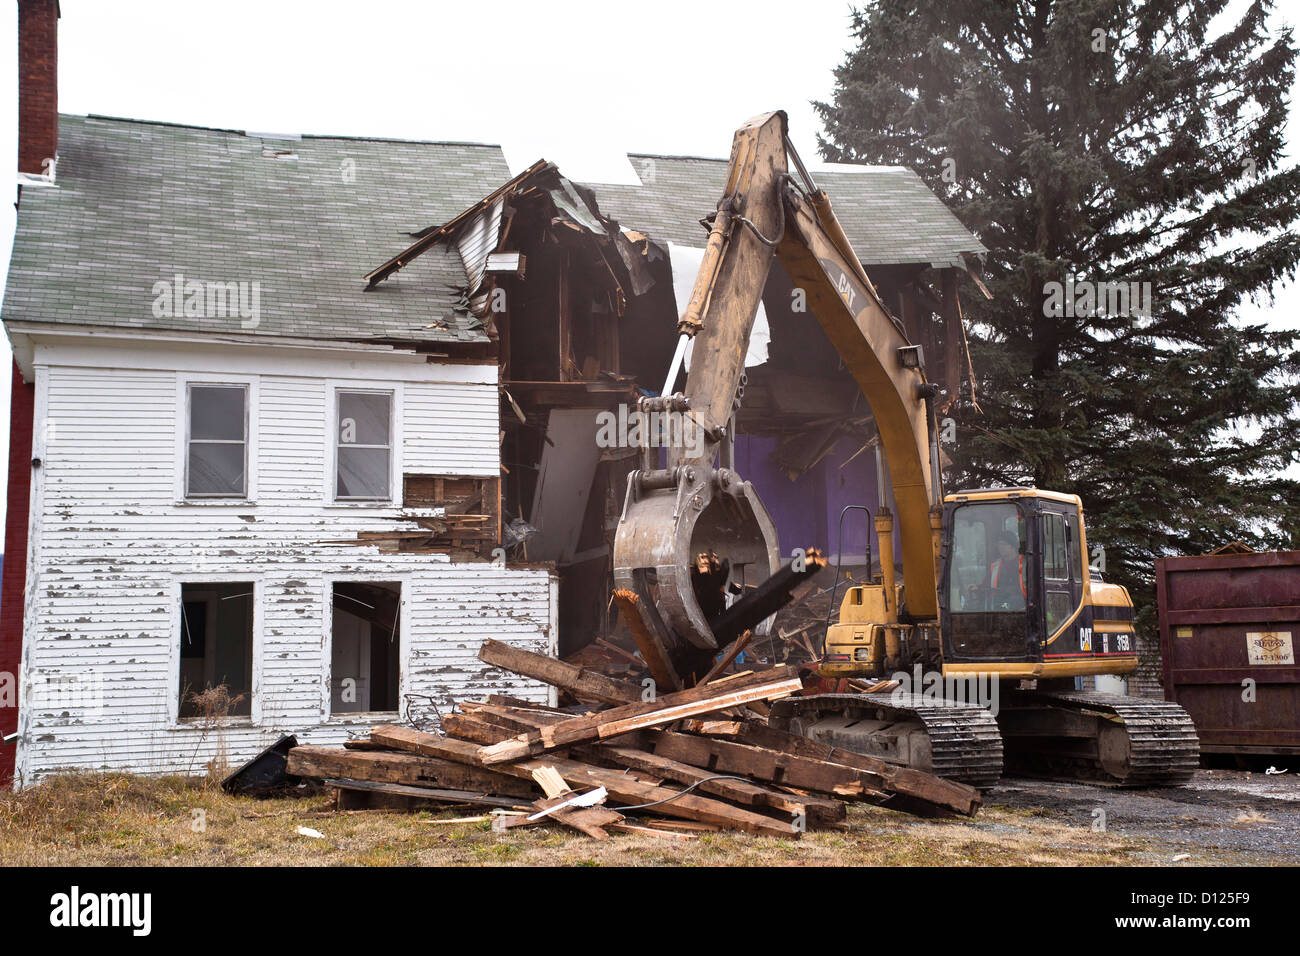 Demolition of HIstoric Building in Pownal Vermont - Stock Image